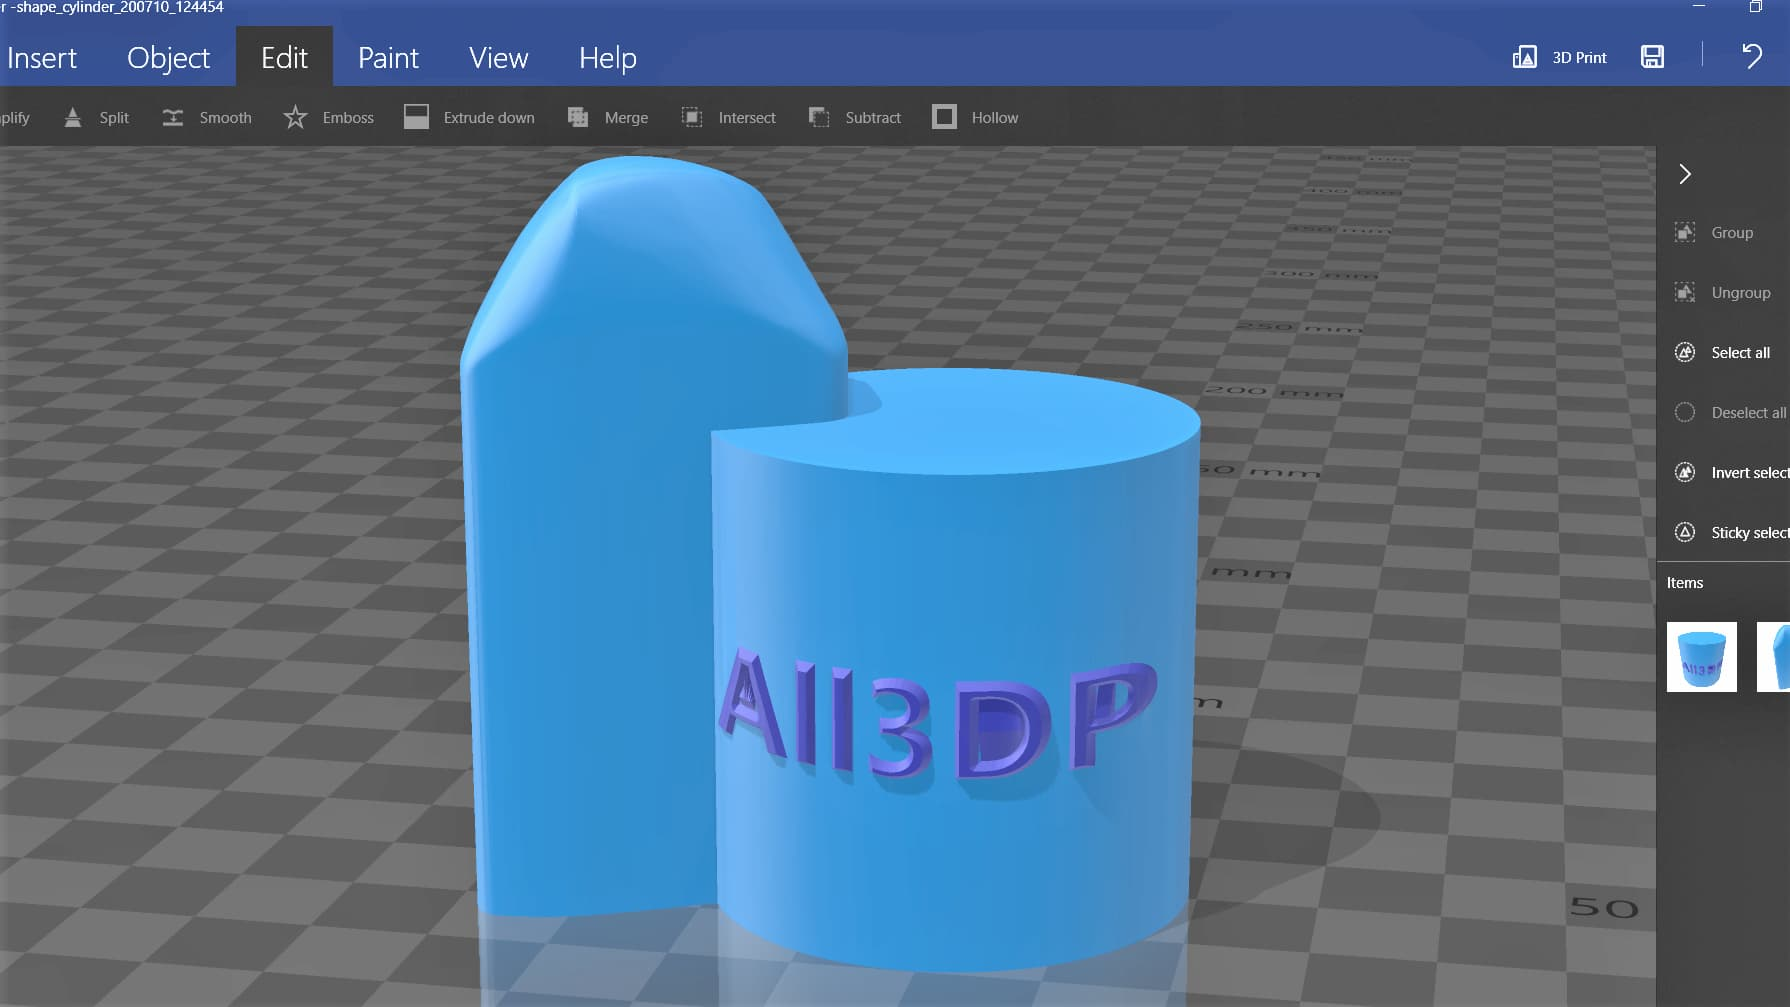 Microsoft 3D Builder: All You Need to Know | All3DP